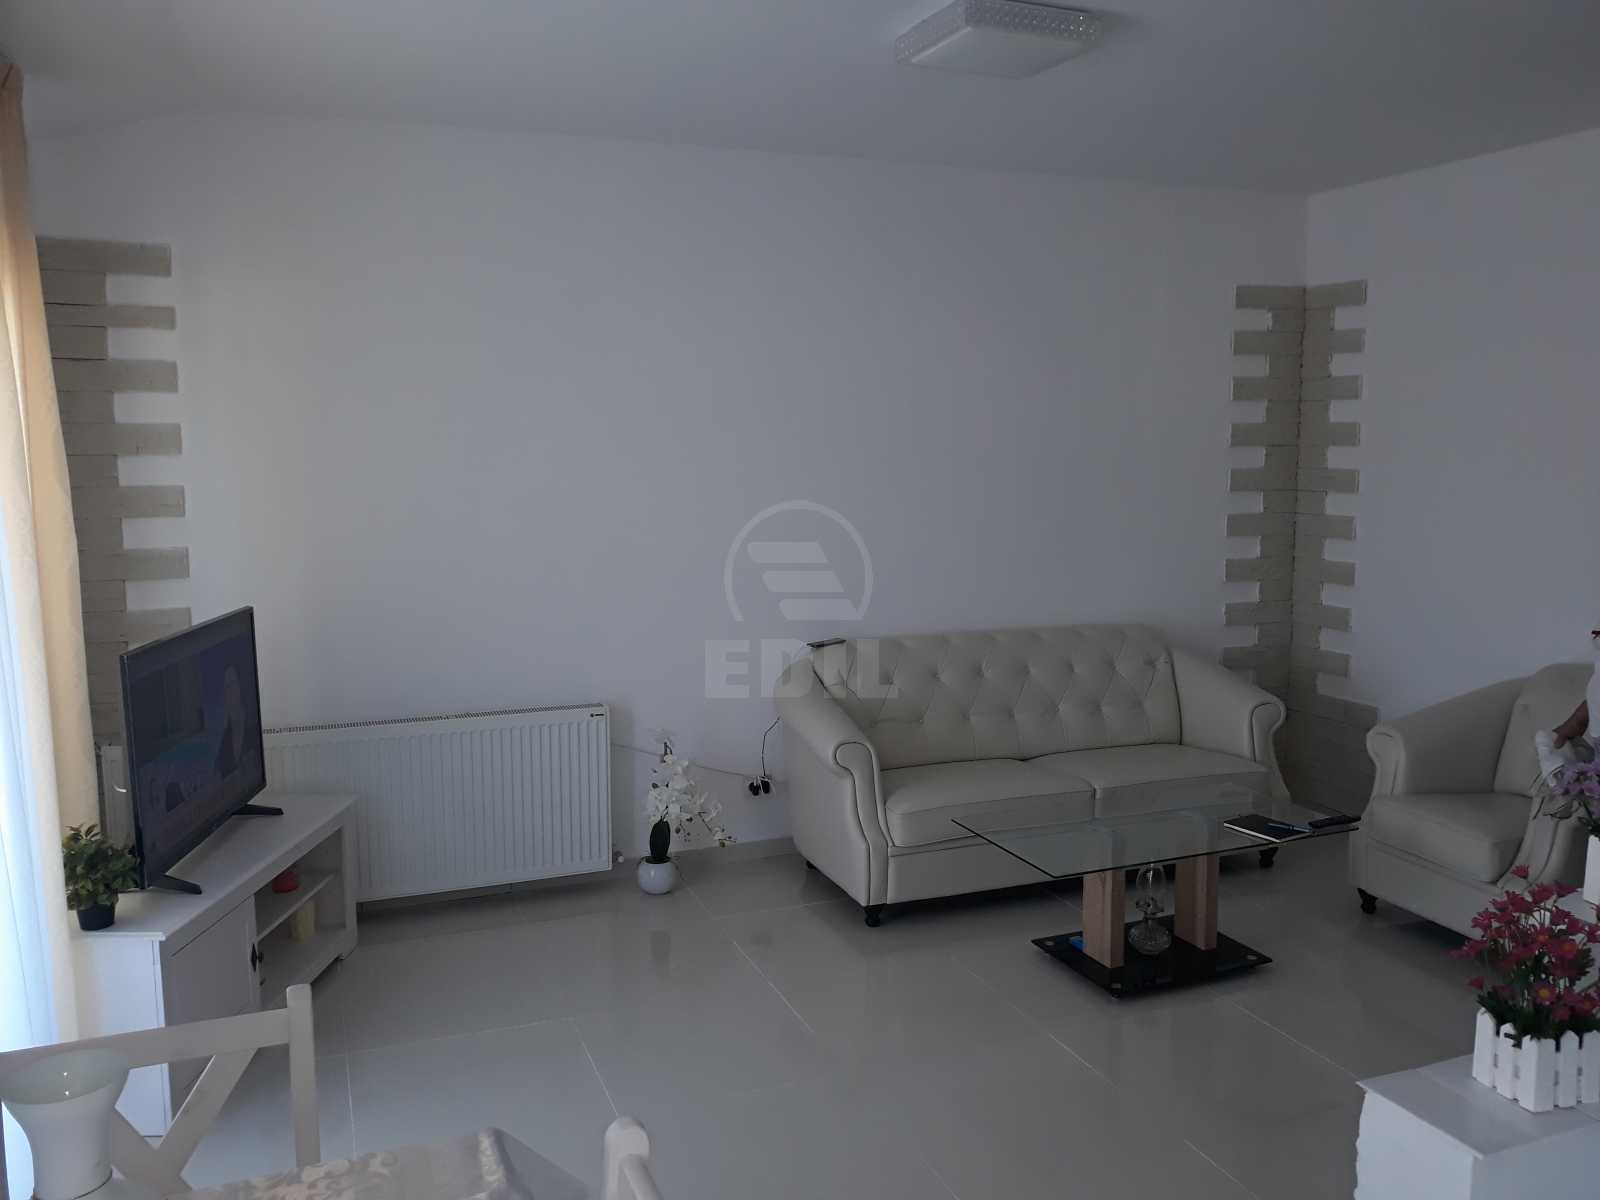 Apartment for rent 2 rooms, APCJ234187FLO-6